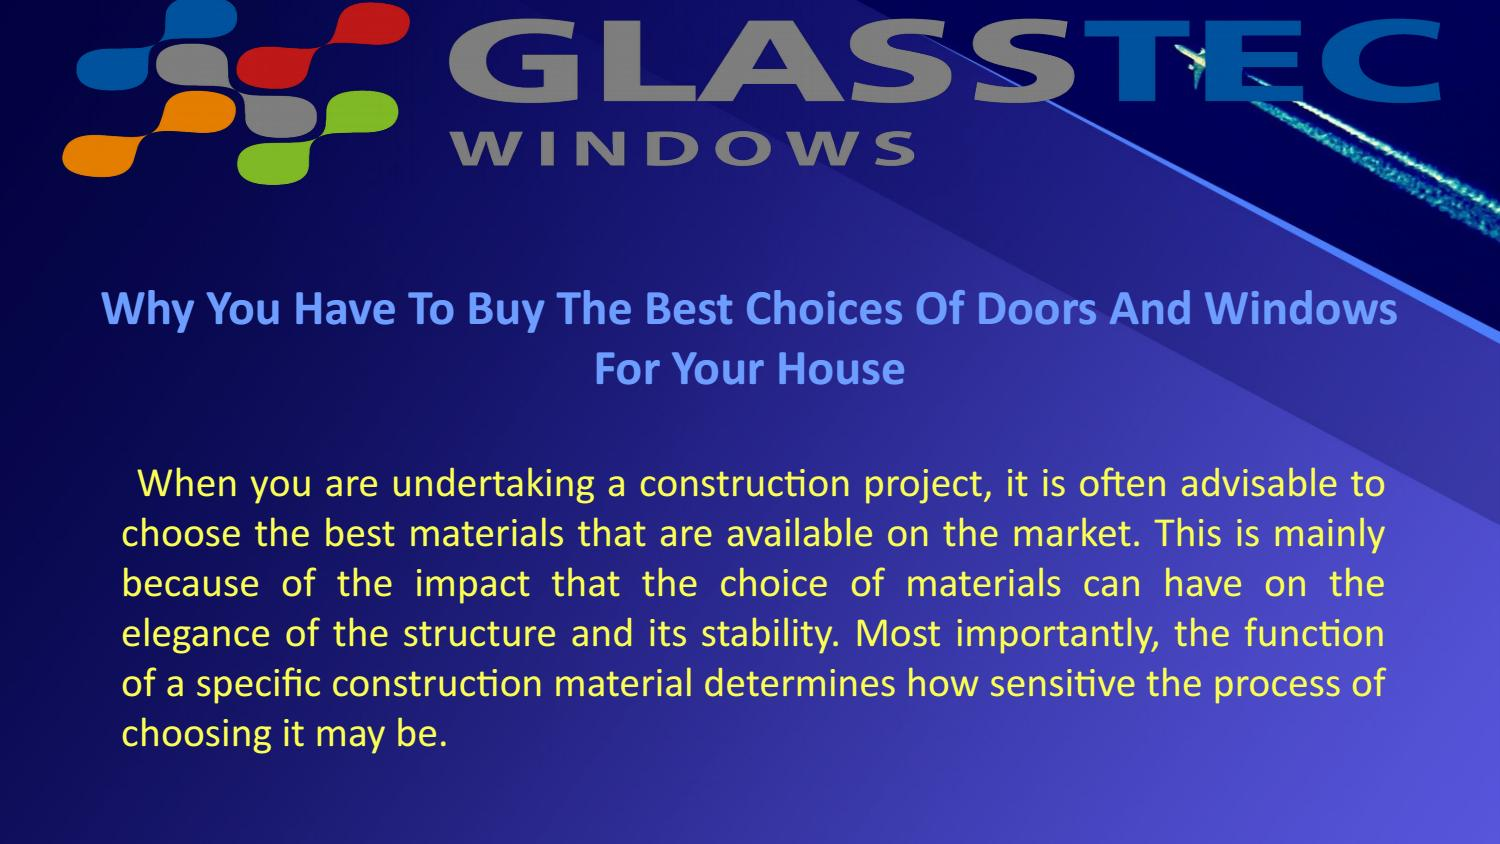 Why You Have To The Best Choices Of Doors And Windows For Your